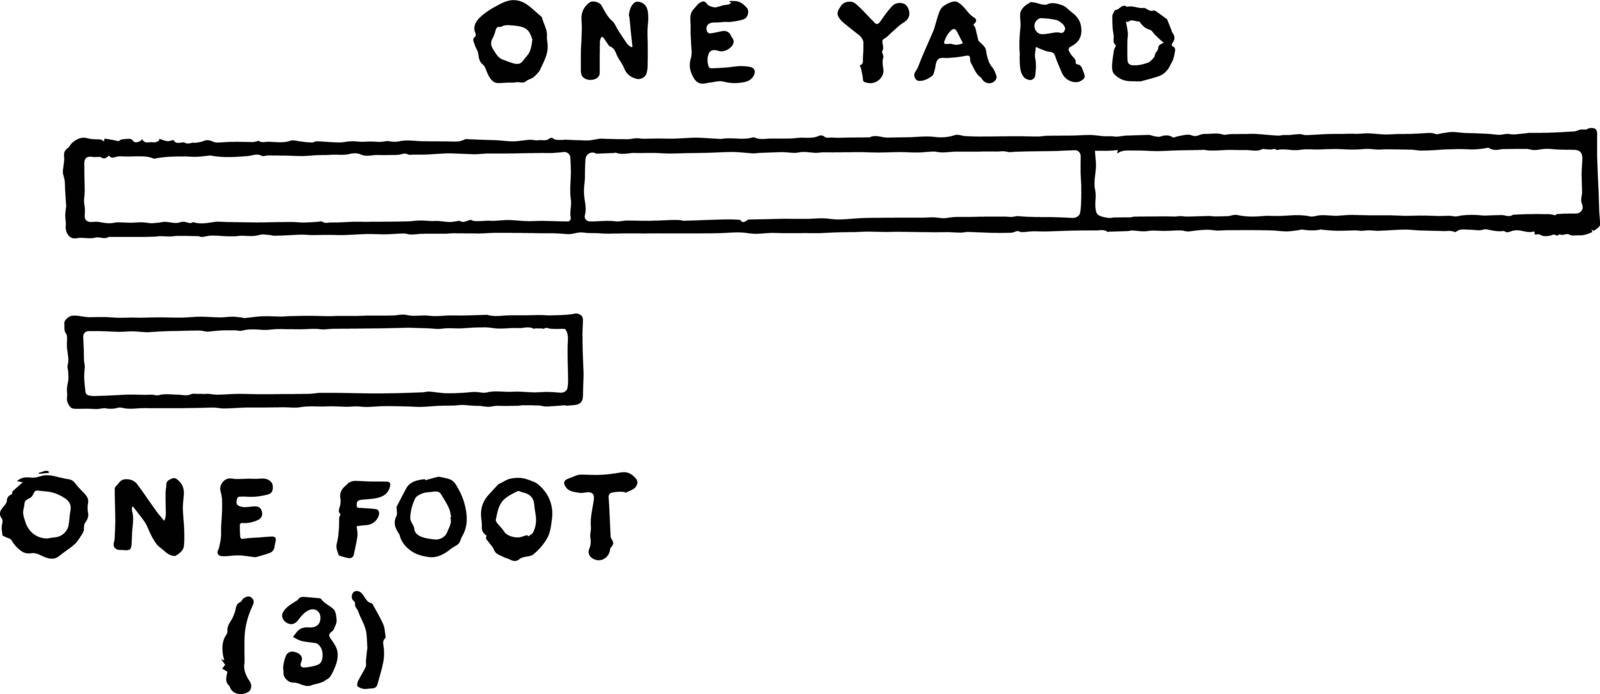 Picture showing the measurement that one foot is one third of a yard, vintage line drawing or engraving illustration.